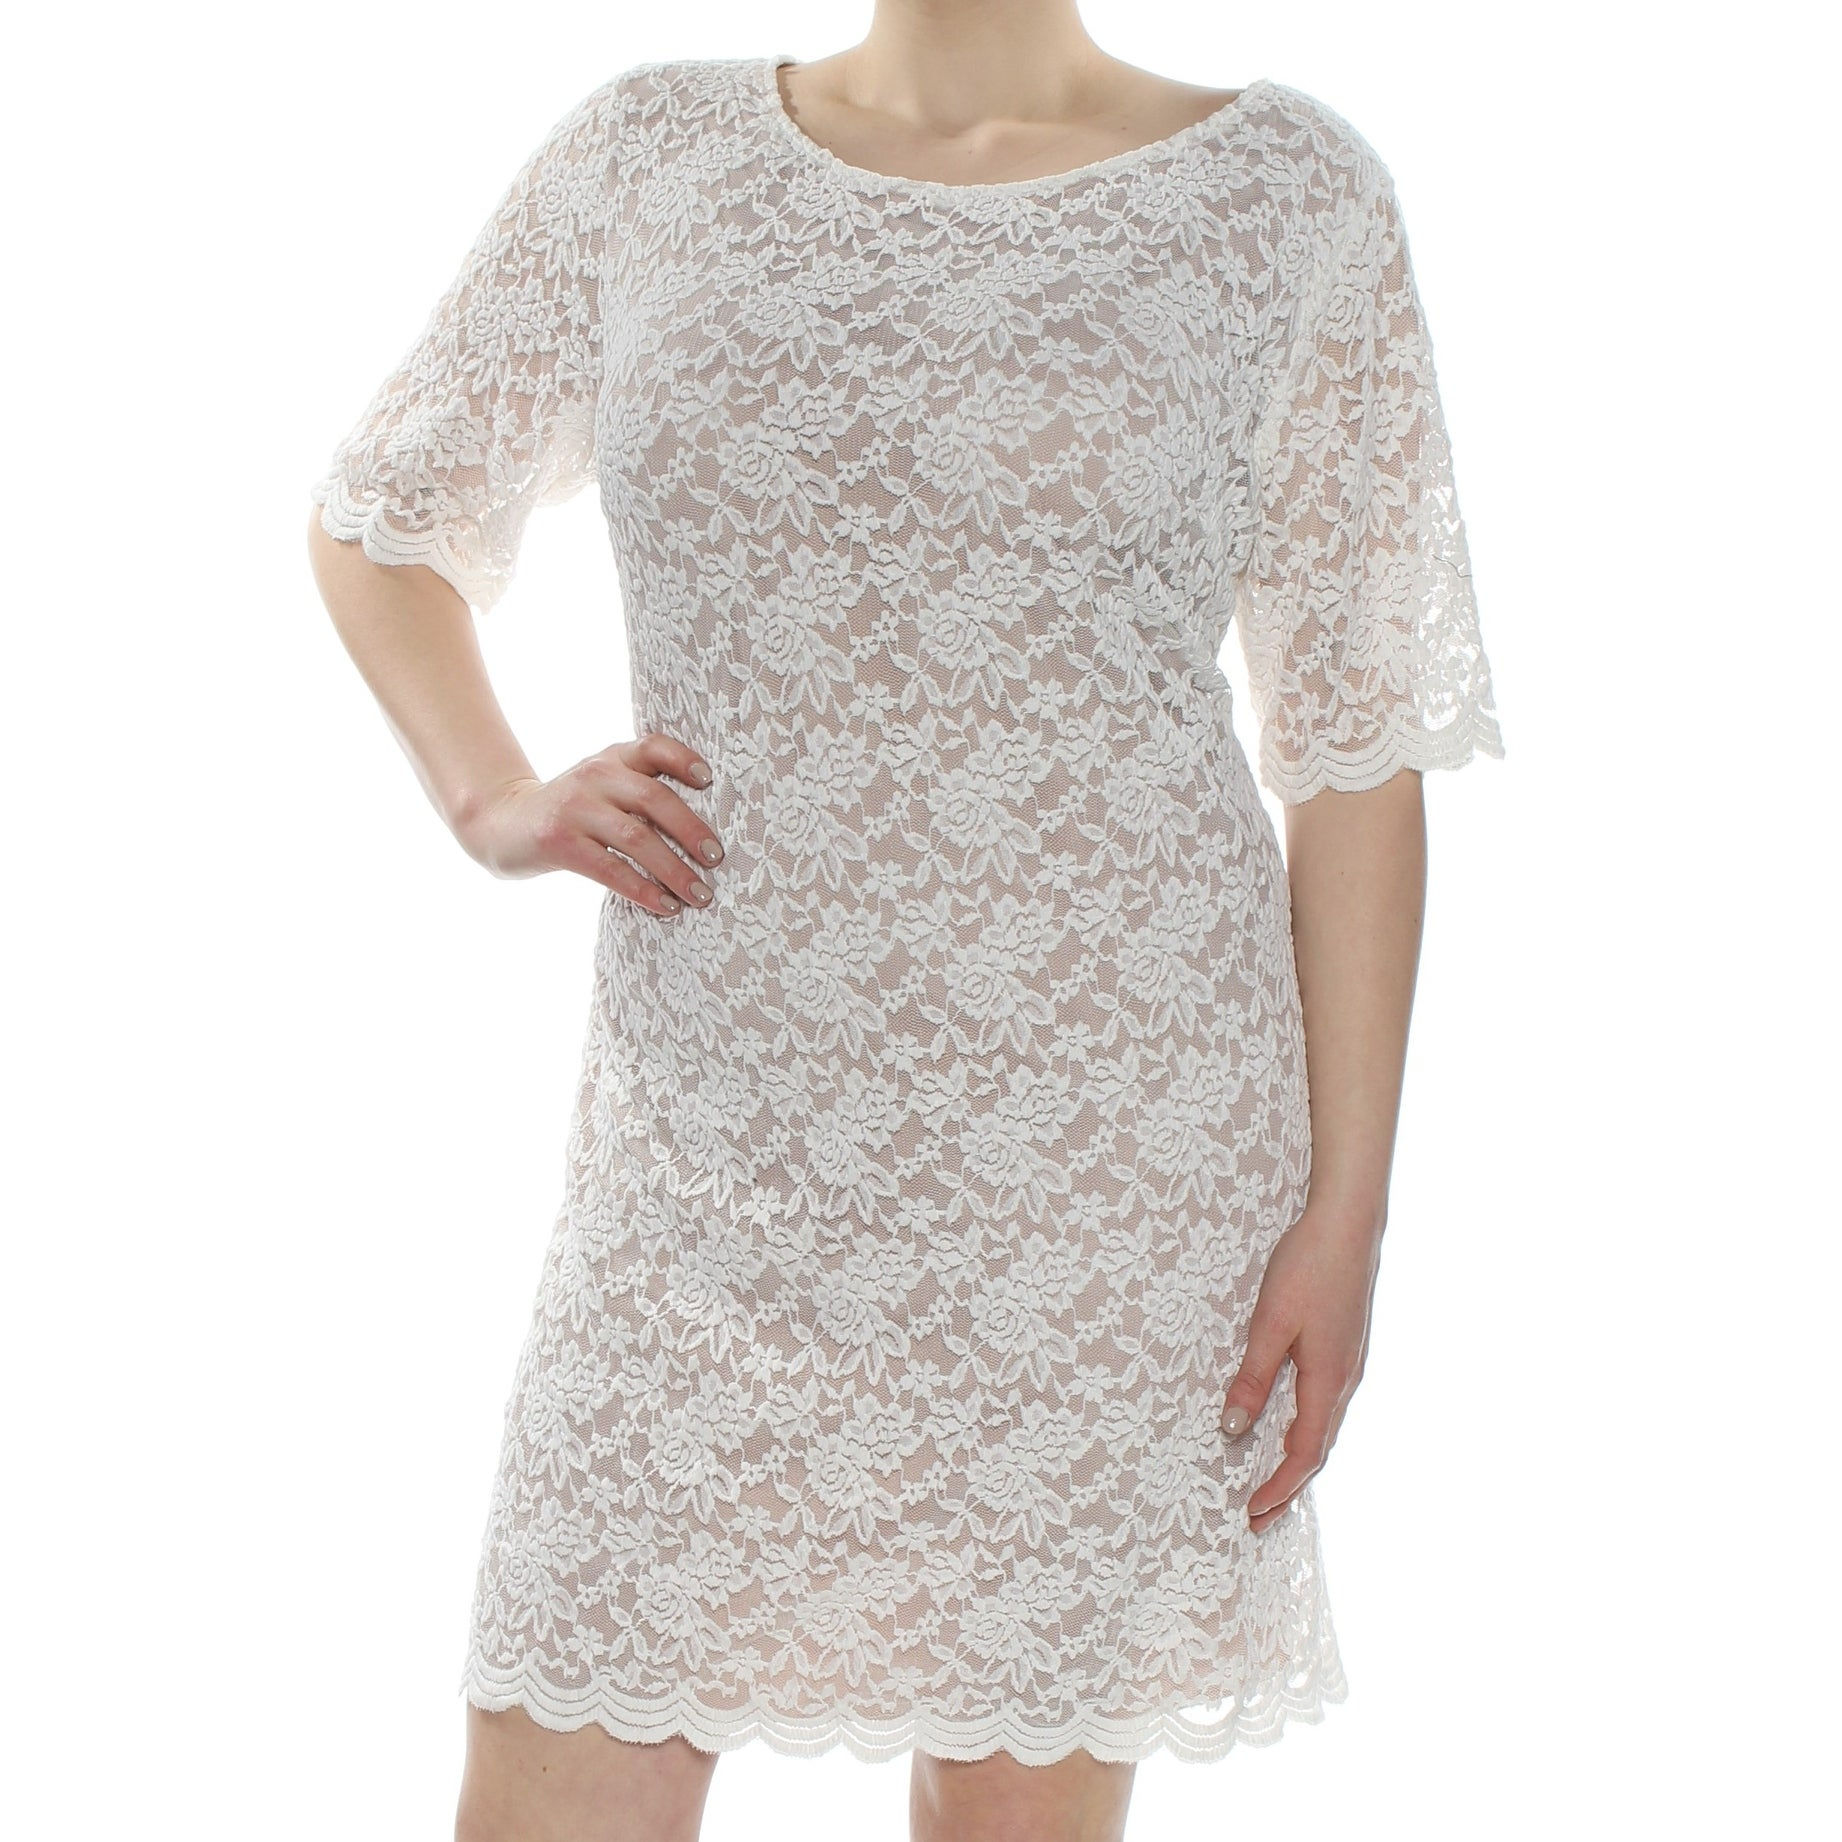 CONNECTED Womens Ivory Lace Sheer Short Sleeve Jewel Neck Above The Knee  Party Dress Plus Size: 20W